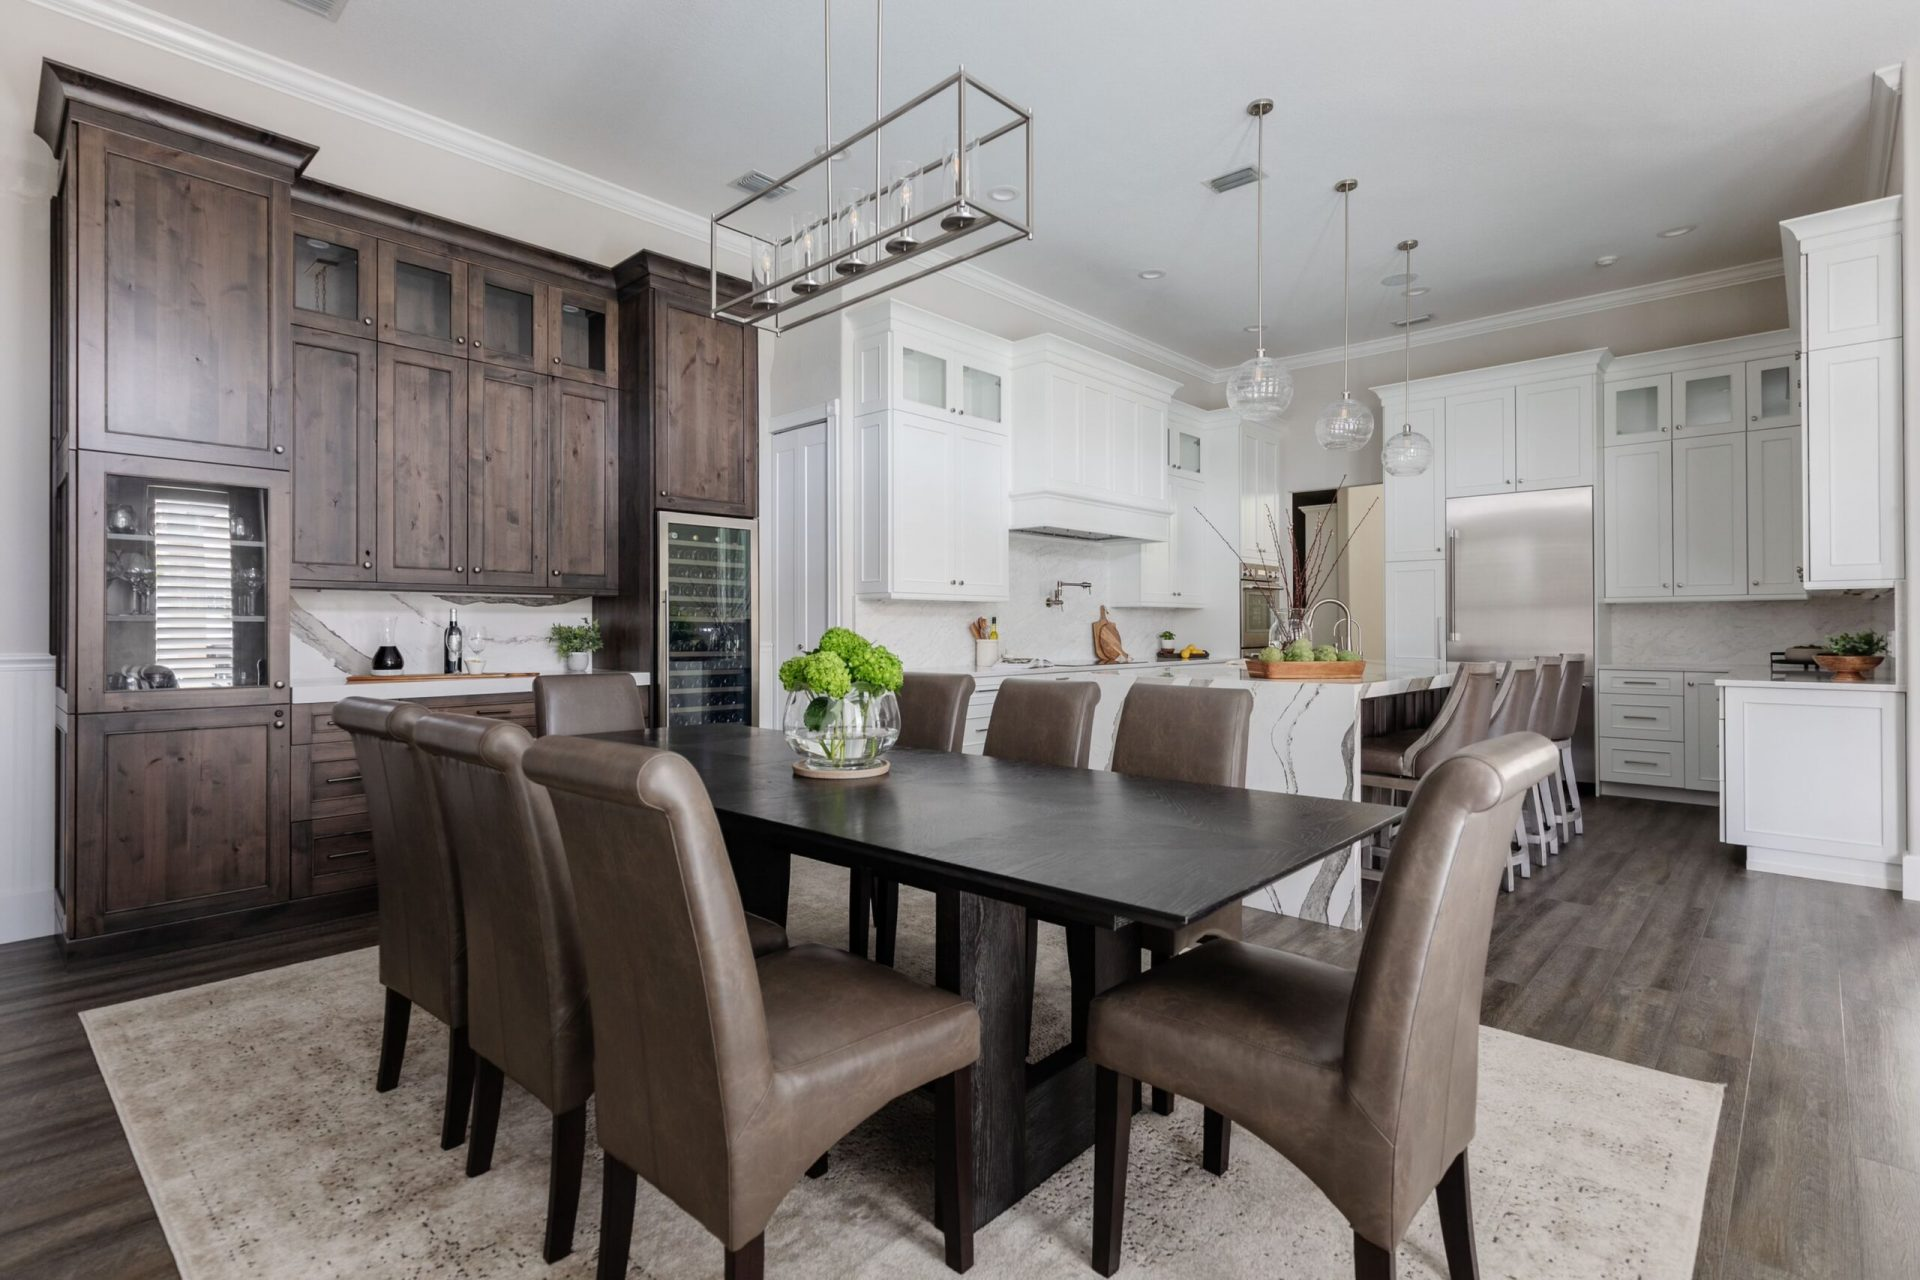 Canoe Creek Terrace | Dining Table